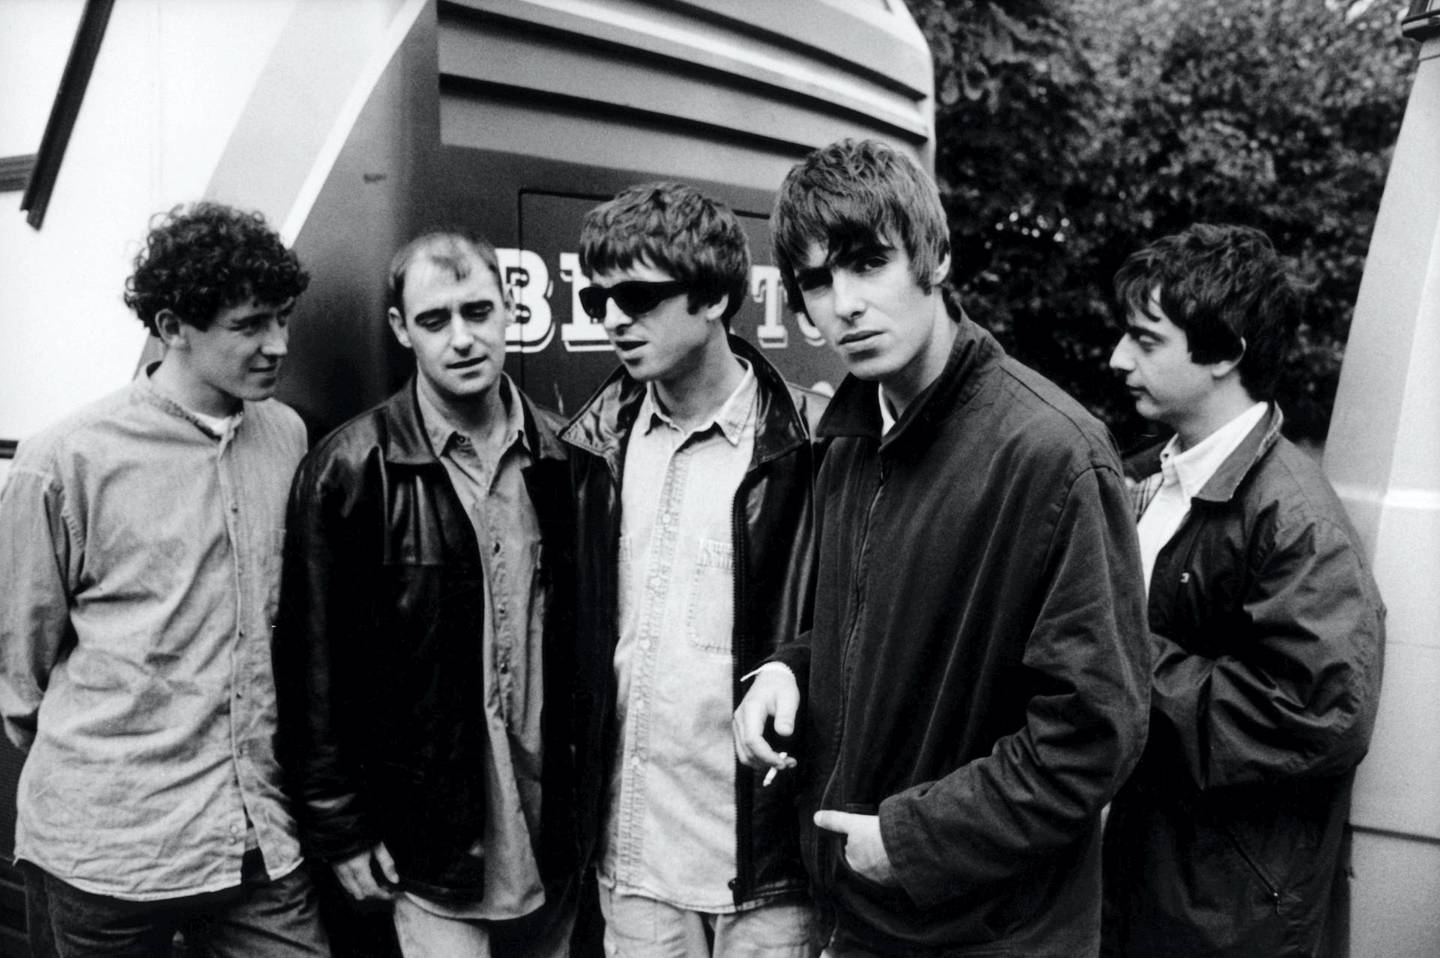 NETHERLANDS - JANUARY 01:  NETHERLANDS  Photo of Liam GALLAGHER and Noel GALLAGHER and OASIS, L-R:Tony McCarroll, Paul 'Bonehead' Arthurs, Noel Gallagher, Liam Gallagher, Paul 'Guigsy' McGuigan - posed, group shot  (Photo by Michel Linssen/Redferns)